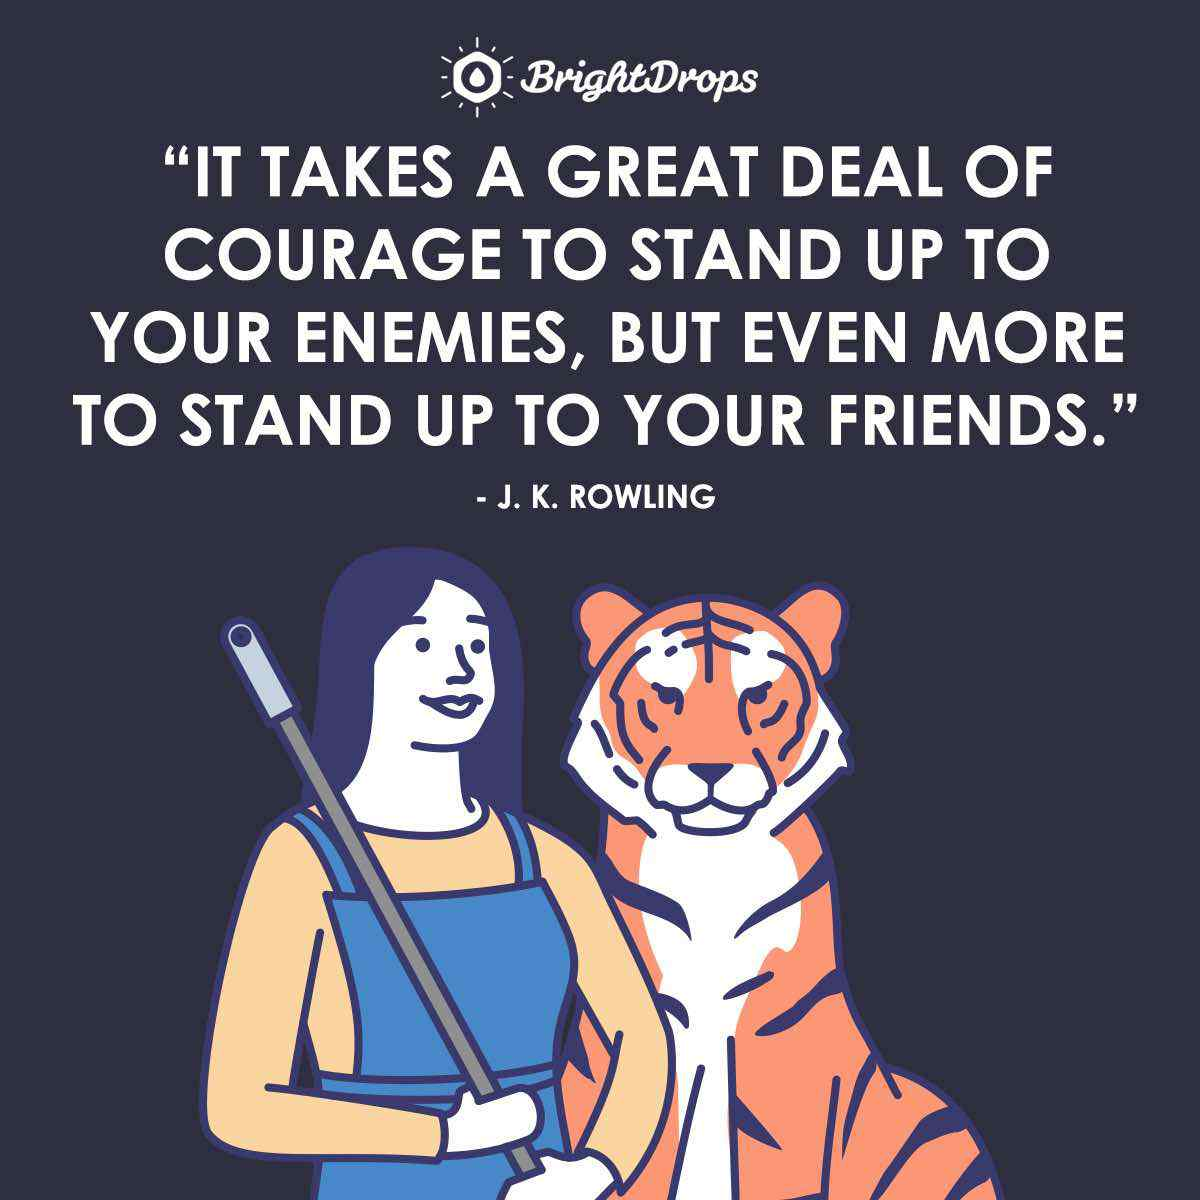 """It takes a great deal of courage to stand up to your enemies, but even more to stand up to your friends."" ~ J. K. Rowling"